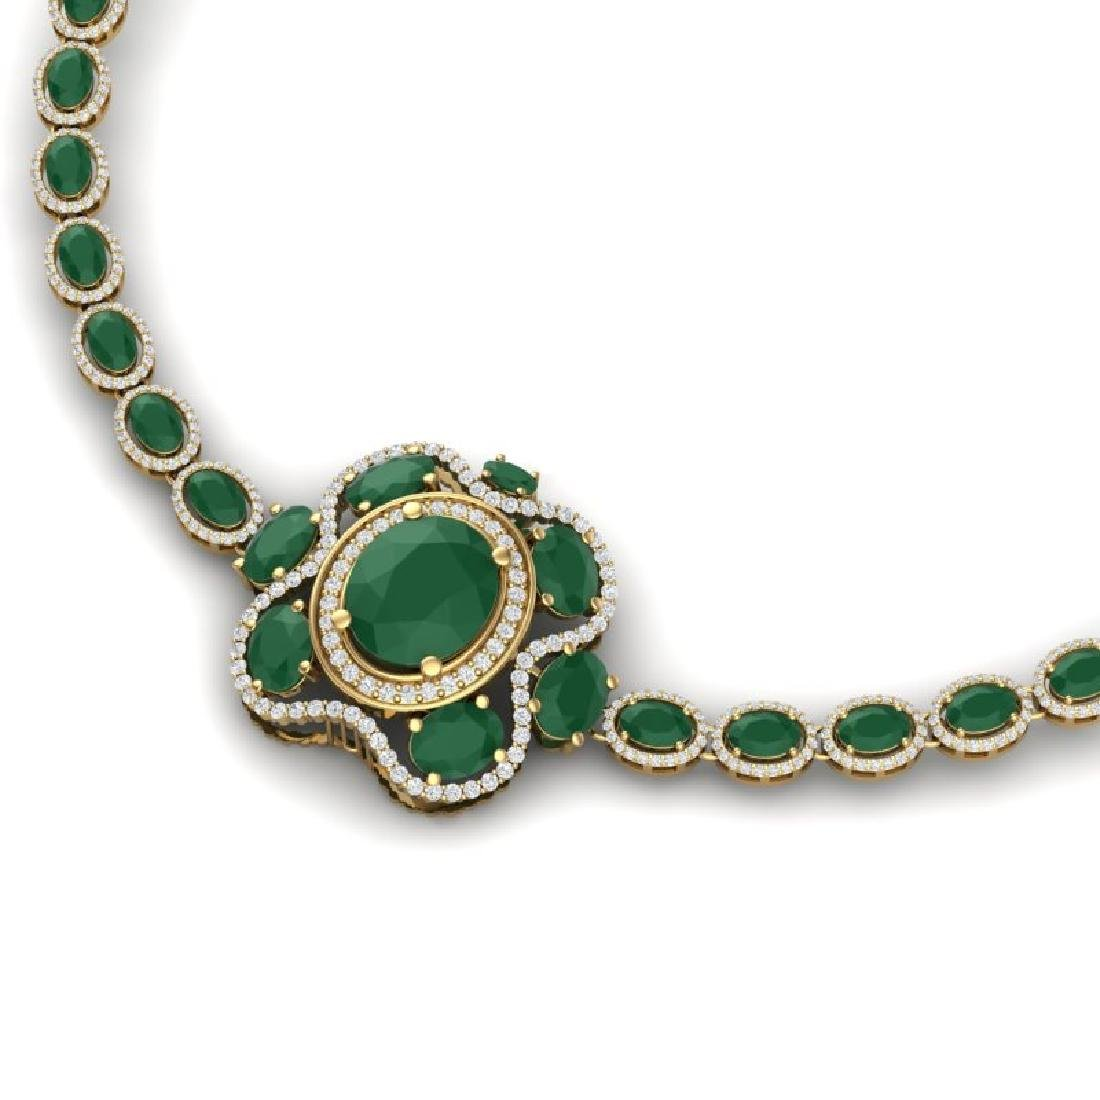 47.43 CTW Royalty Emerald & VS Diamond Necklace 18K